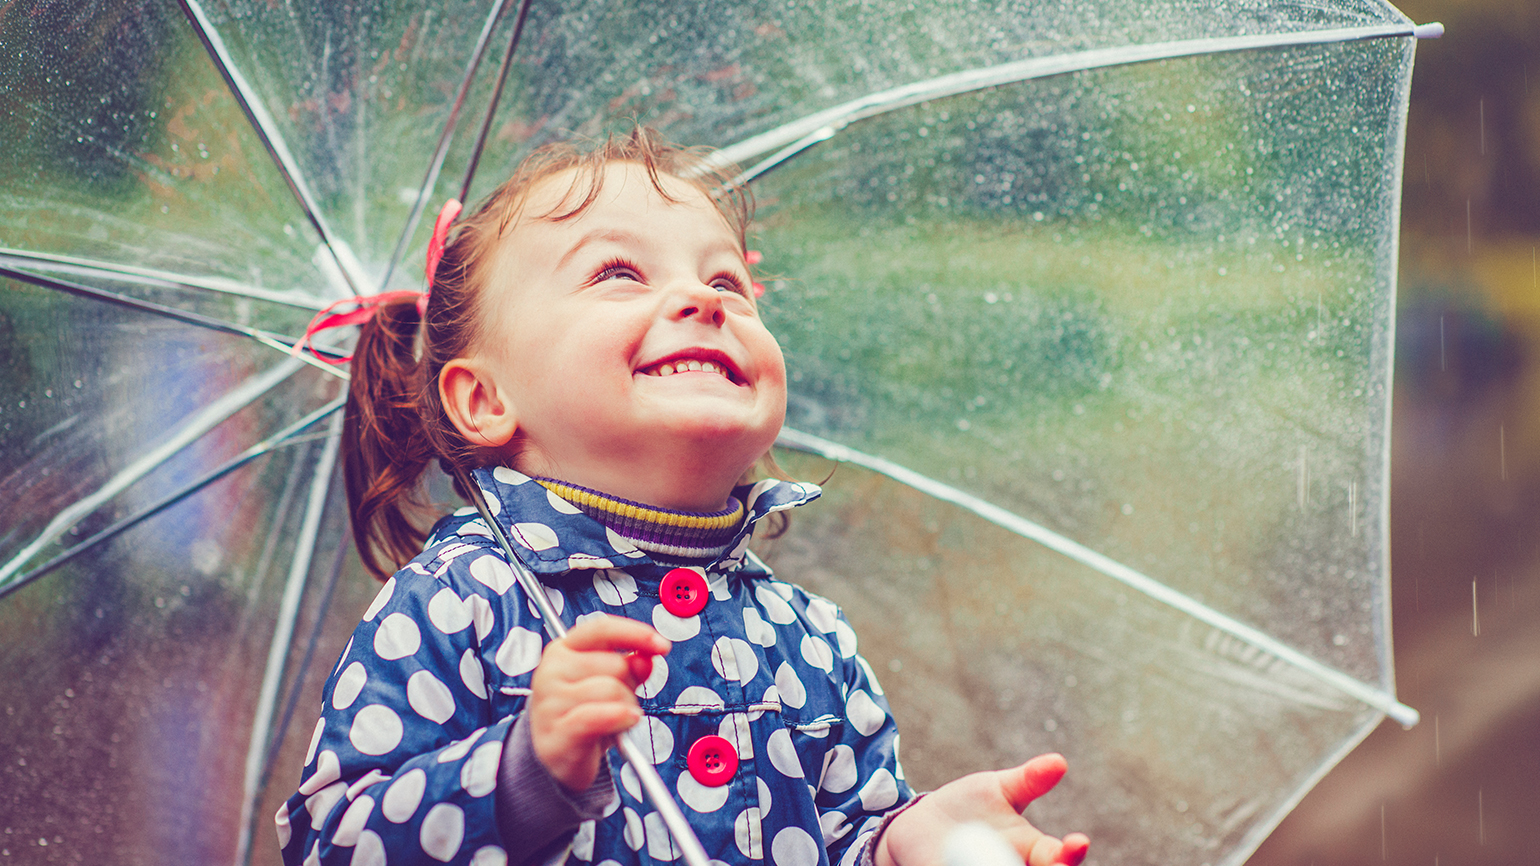 A child with an umbrella looks up at the raindrops and smiles